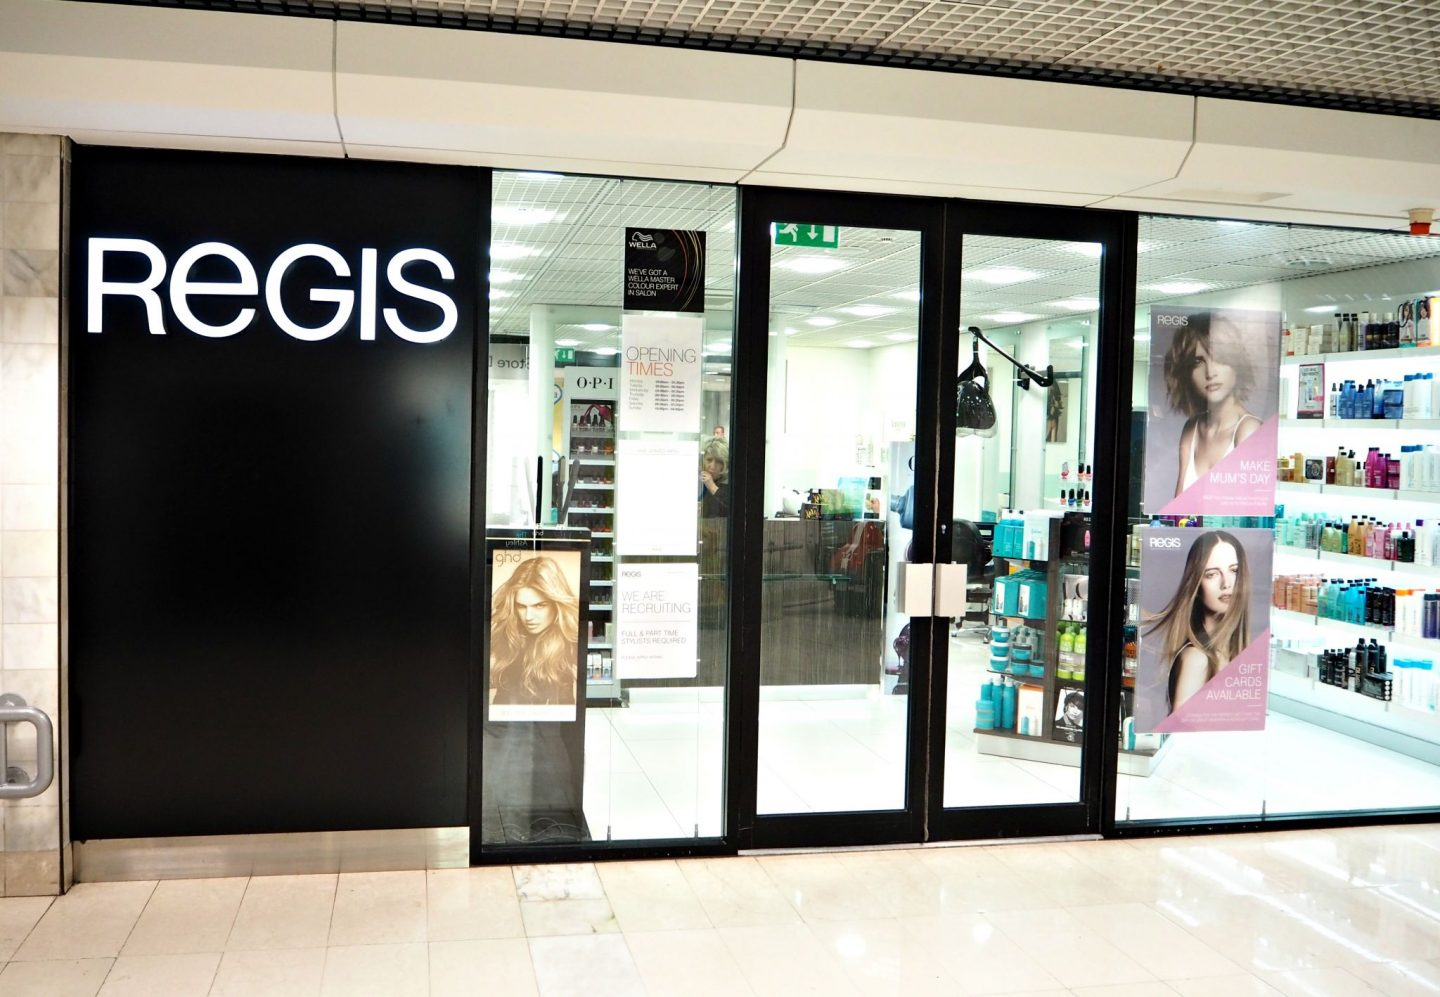 Regis hair salon in Epsom